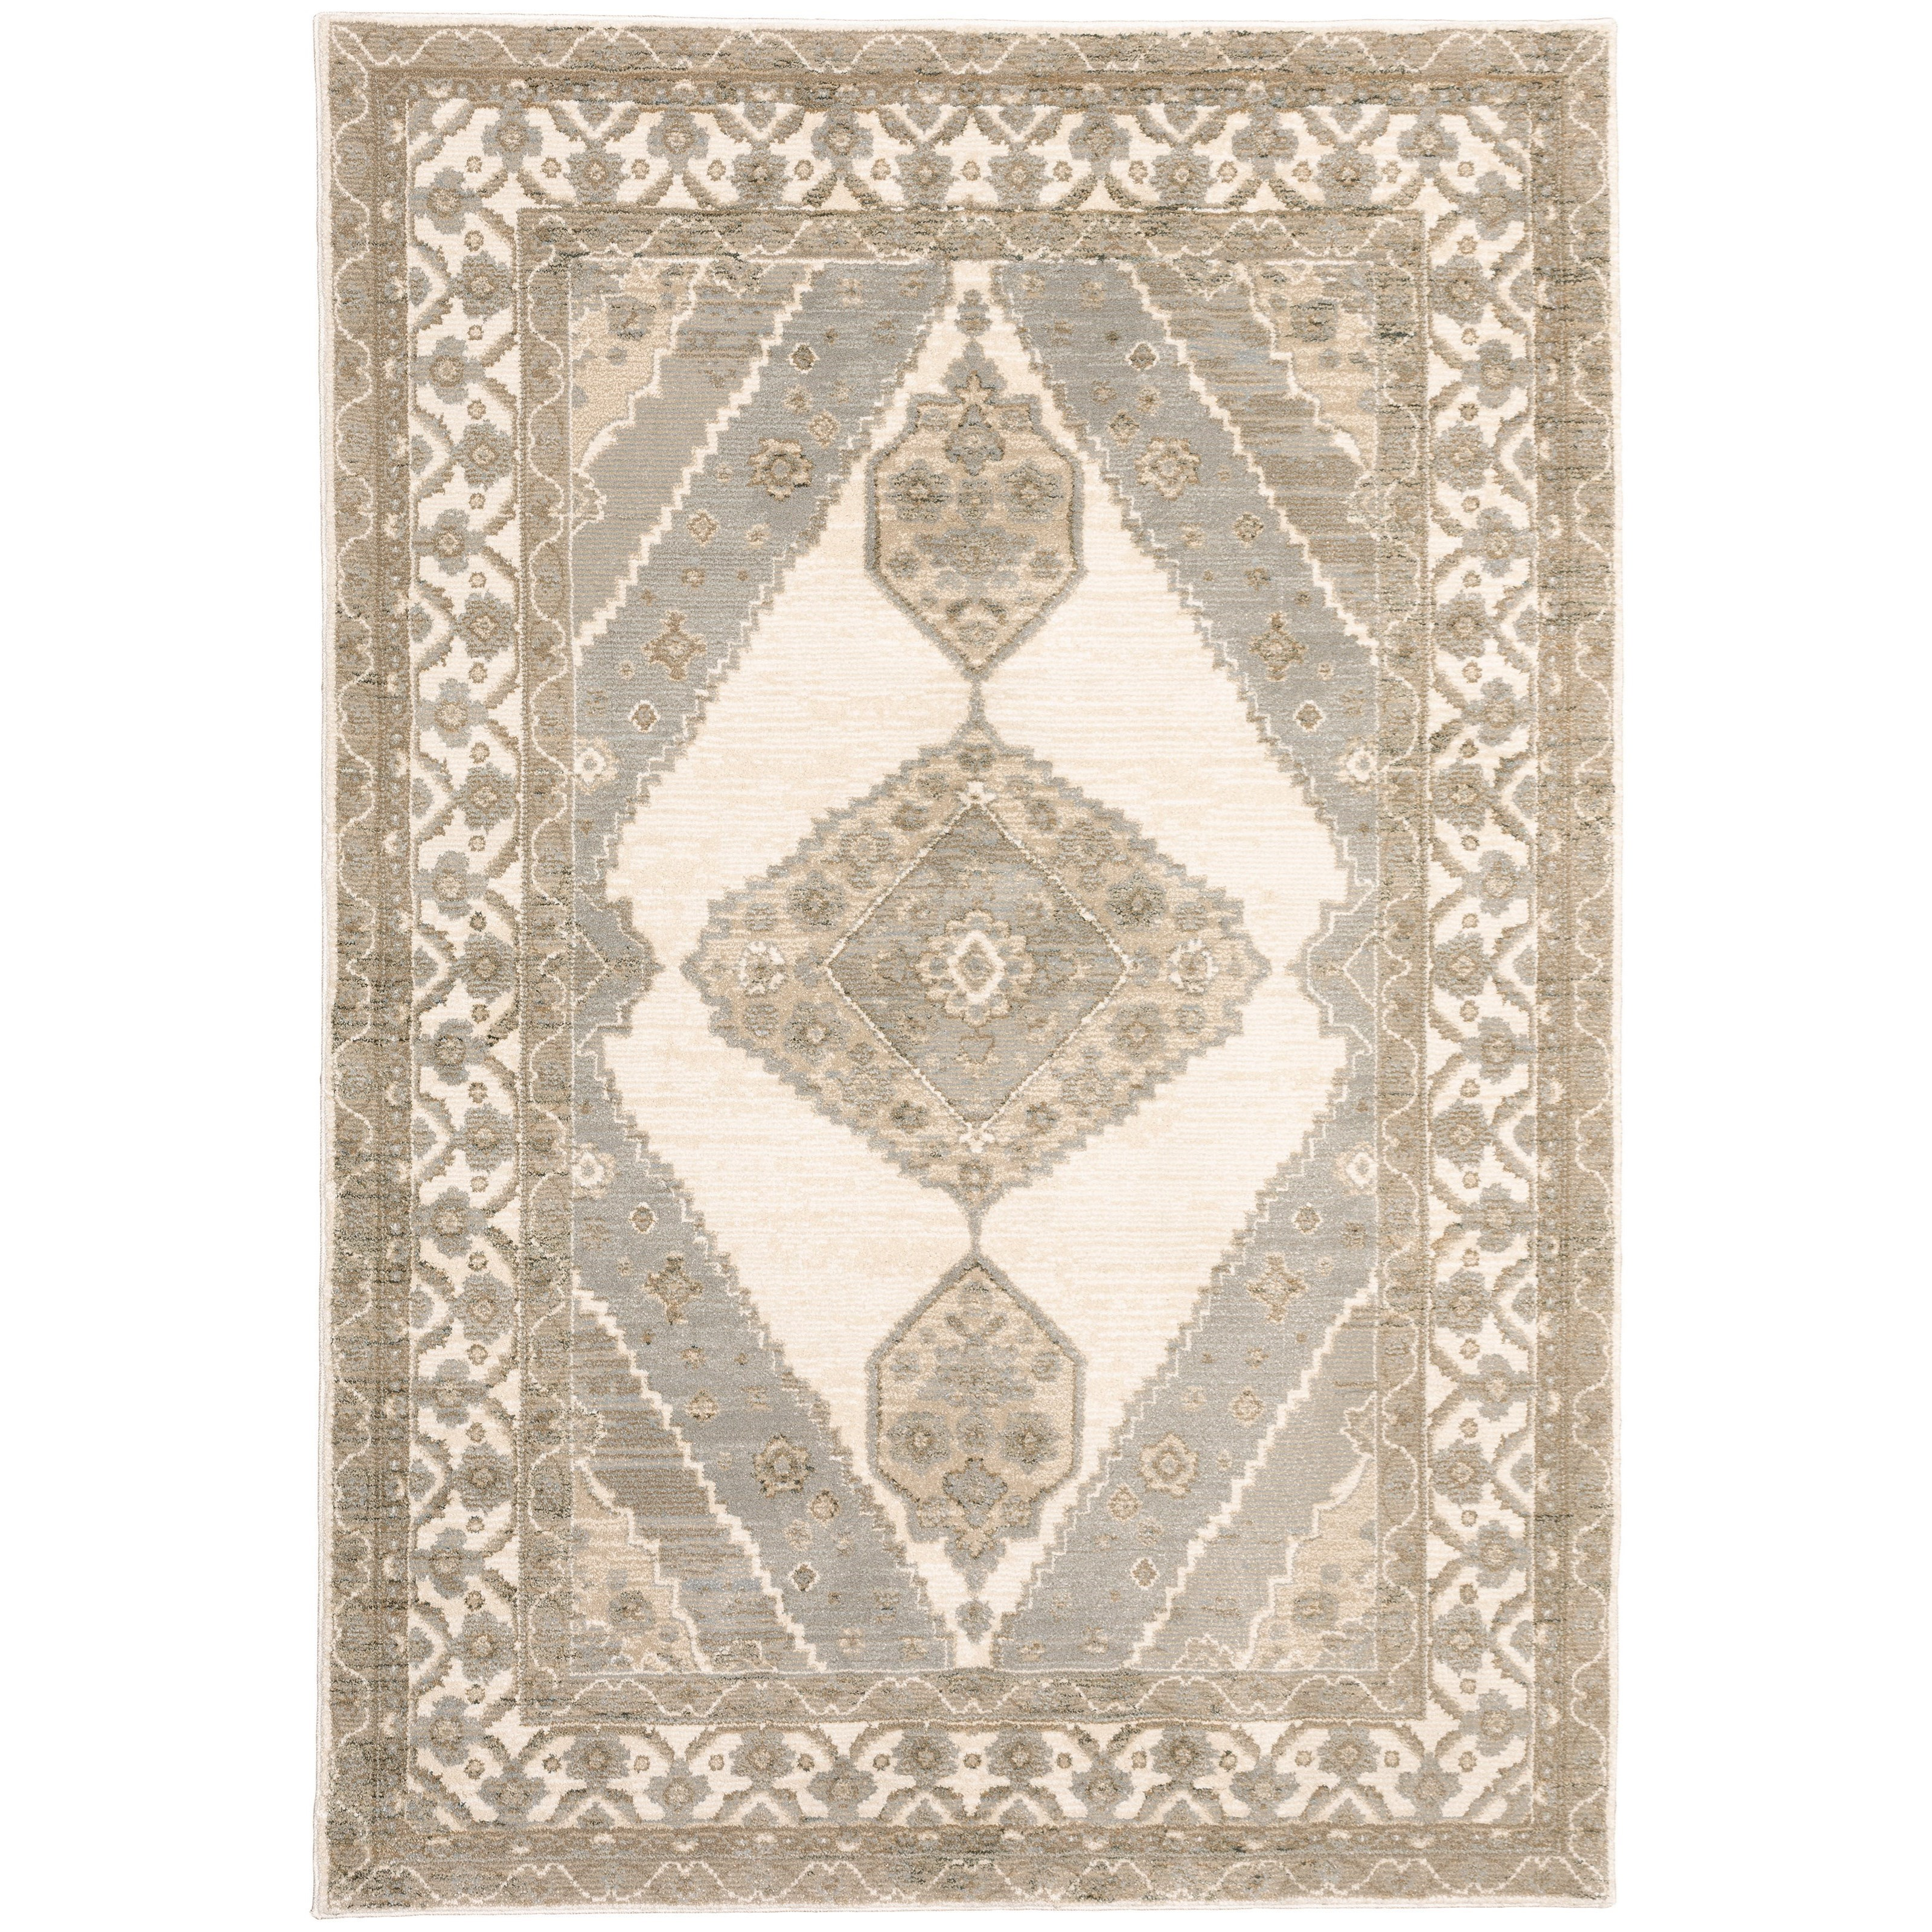 "Andorra 7'10"" X 10'10"" Rectangle Rug by Oriental Weavers at Steger's Furniture"